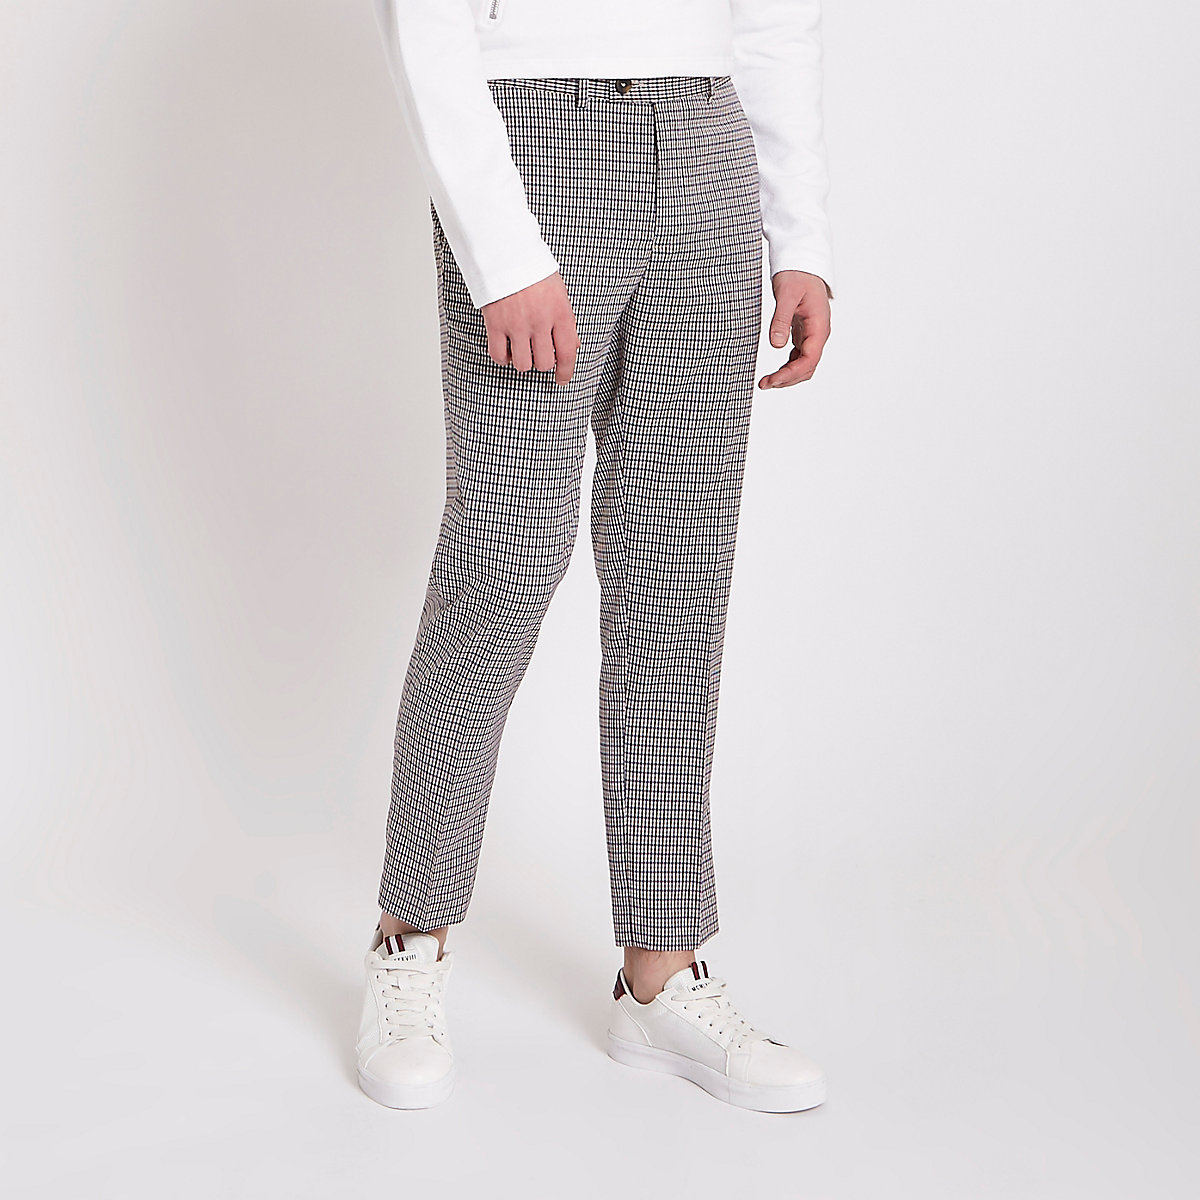 Grey Check Skinny Cropped Smart Pants Smart Pants Pants Men